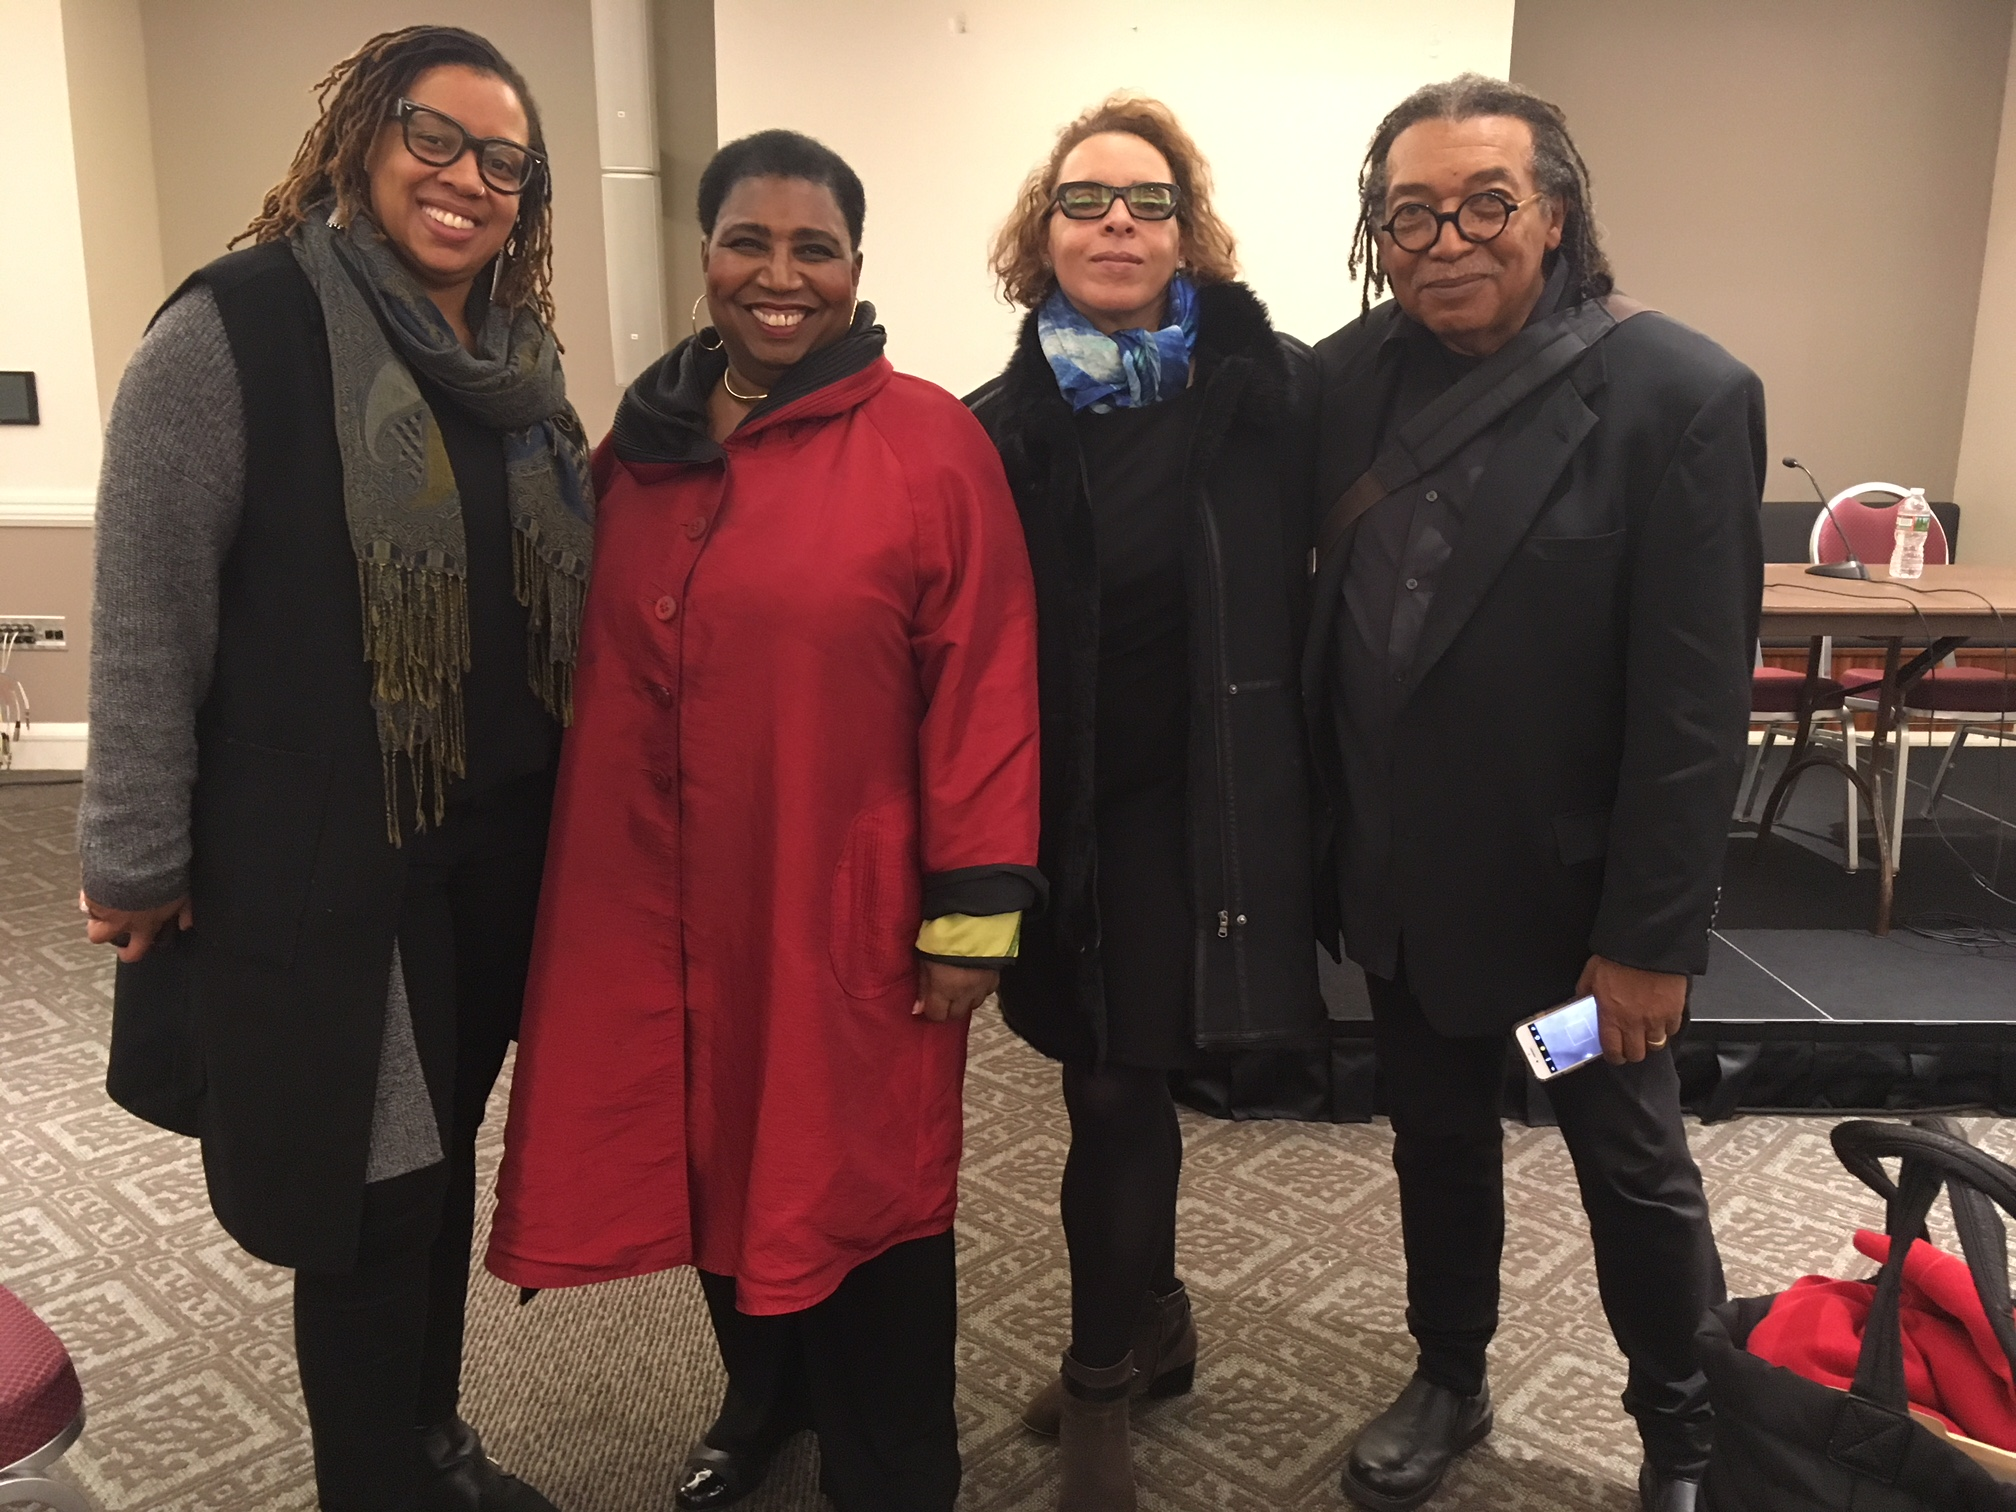 """Participants in our panel """"Race and Representation in the Visual Arts: A Boston Perspective"""" from left to right: Alexandria Smith, Callie Crossley, Vera Ingrid Grant, James Montford. Missing from photo: Camilo Alvarez"""